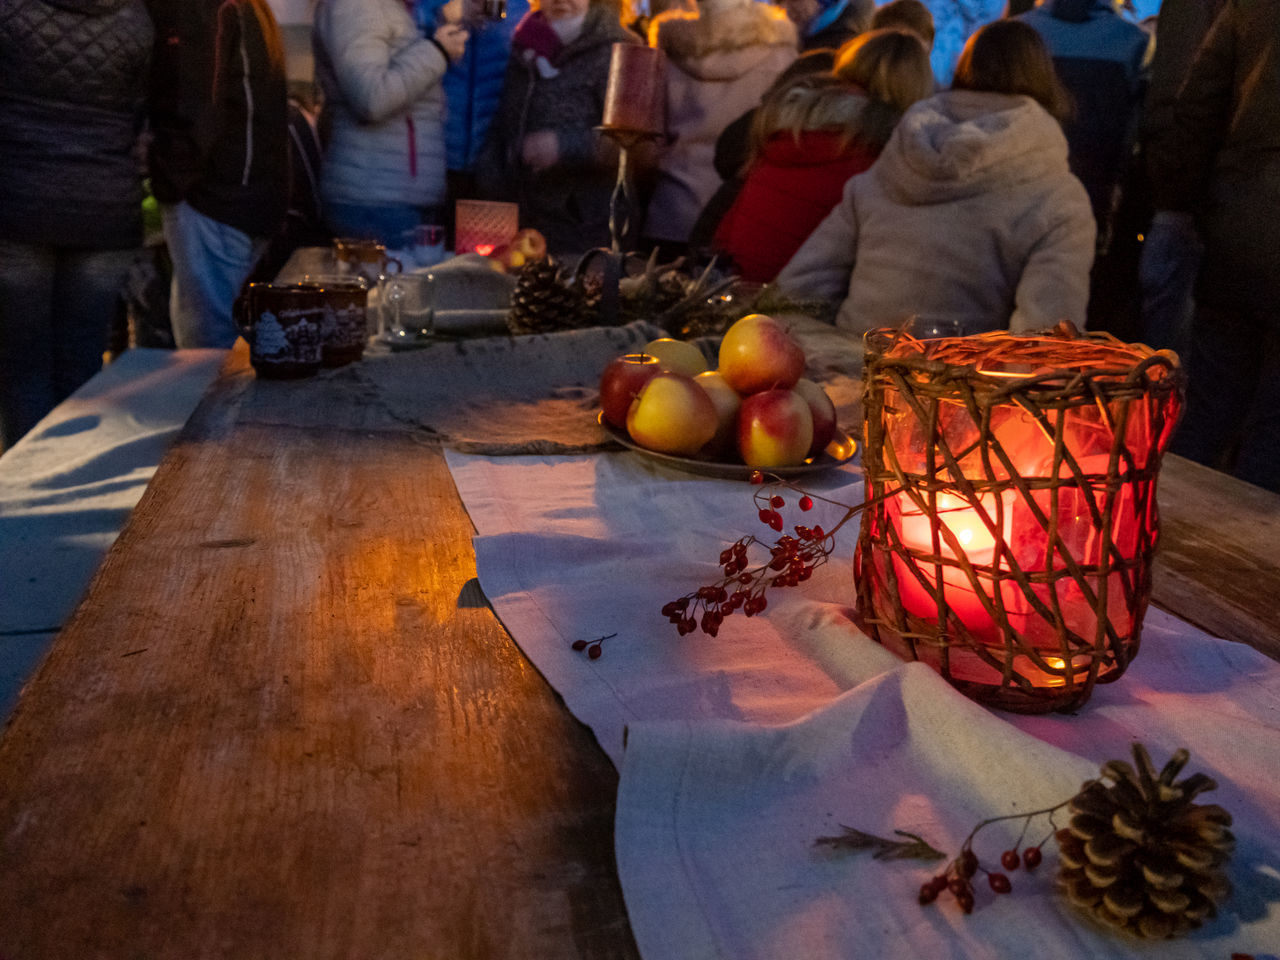 food and drink, group of people, food, real people, fruit, wellbeing, healthy eating, freshness, table, illuminated, religion, men, people, candle, market, incidental people, indoors, spirituality, group